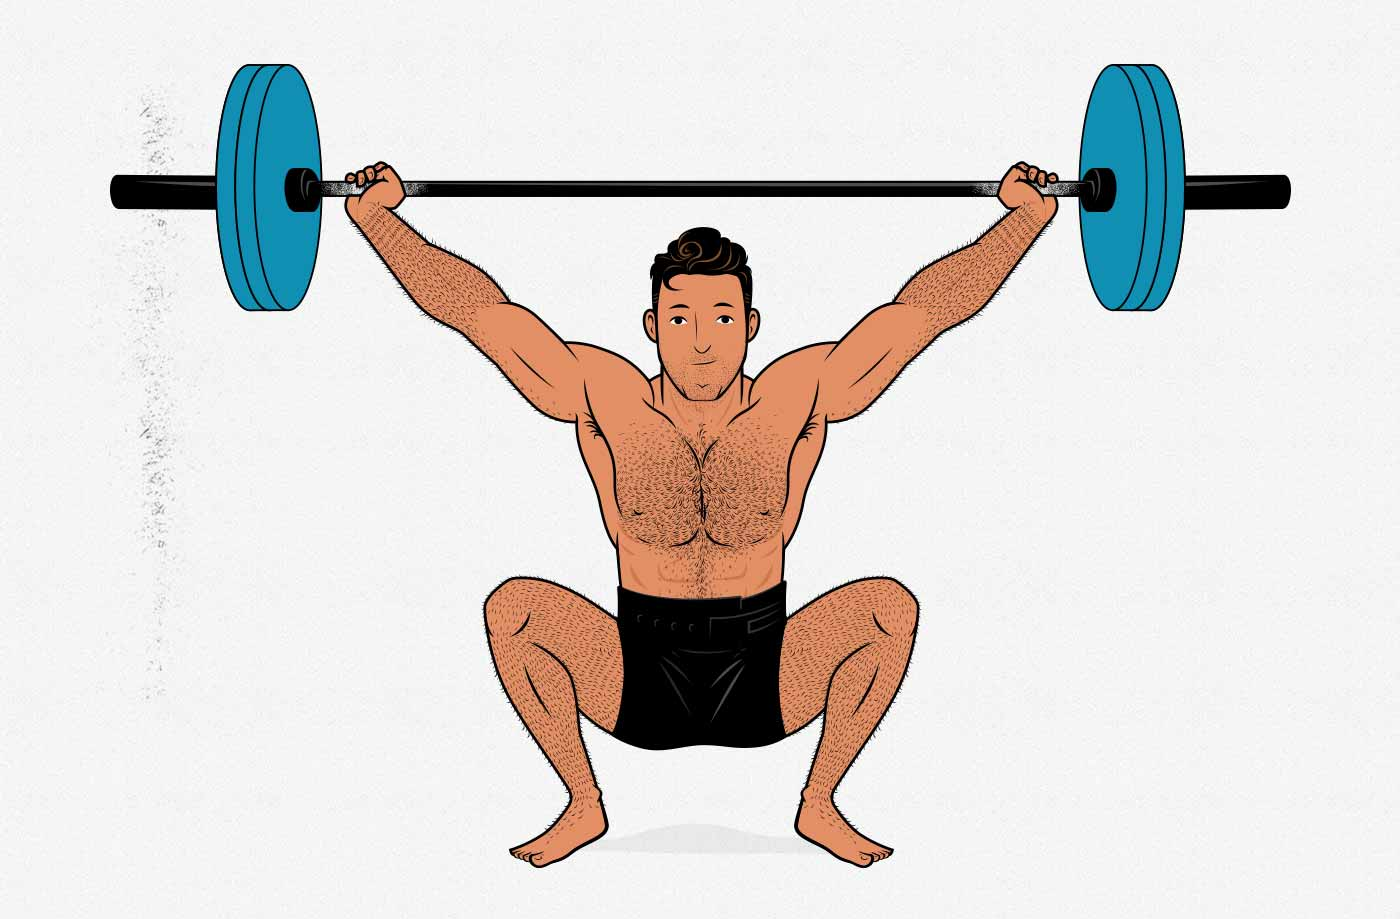 Illustration showing a man doing a snatch.